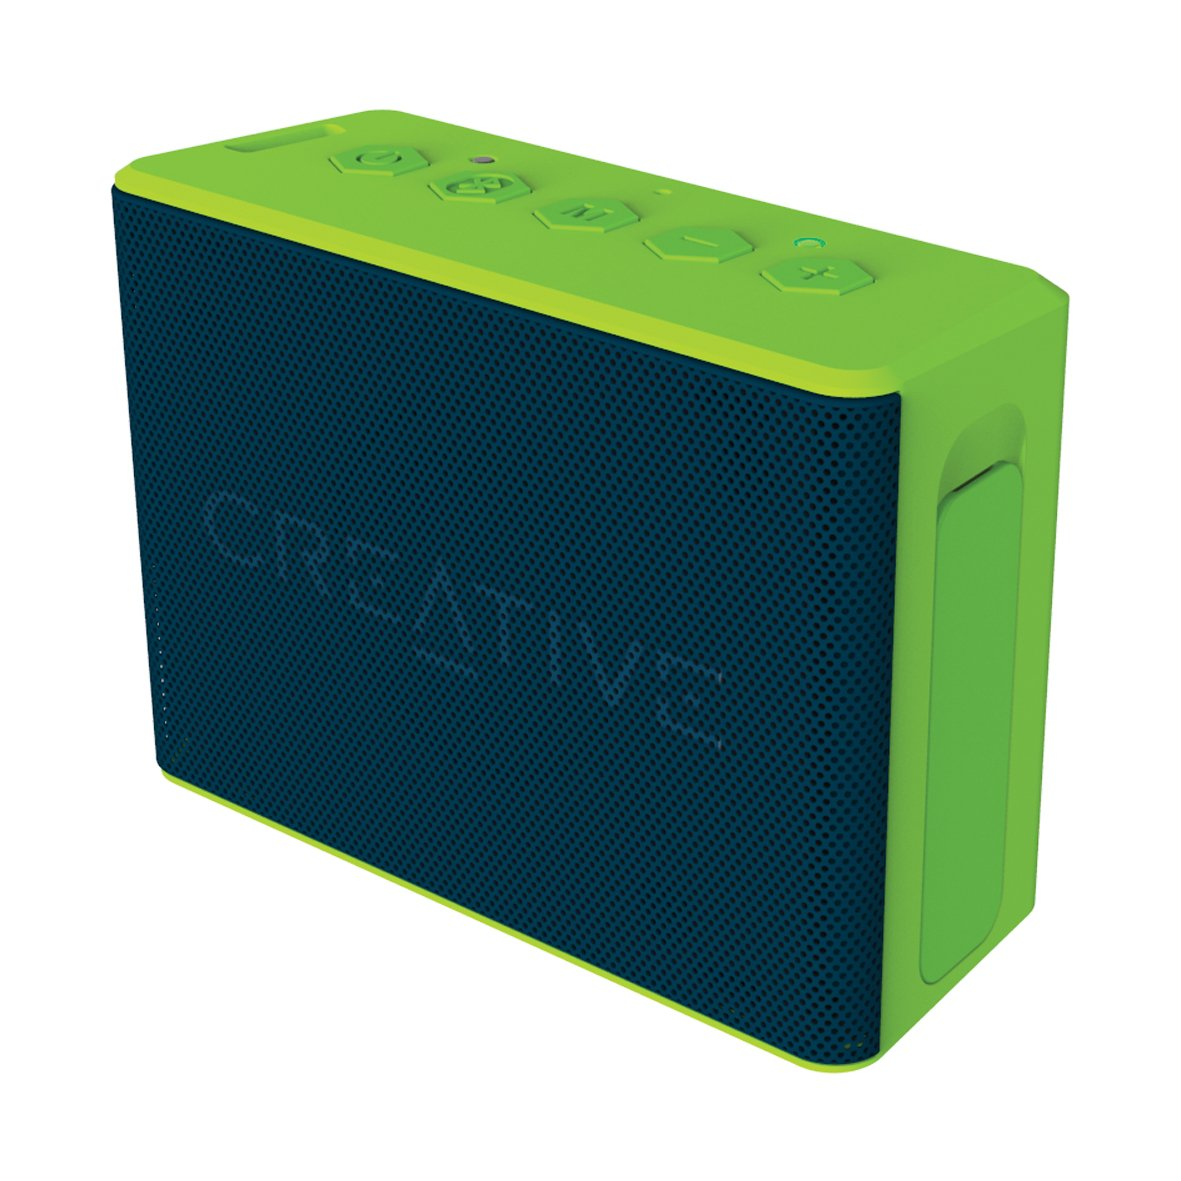 Creative Labs 51MF8250AA003 - Altavoz con Bluetooth: Creative-Labs: Amazon.es: Electrónica